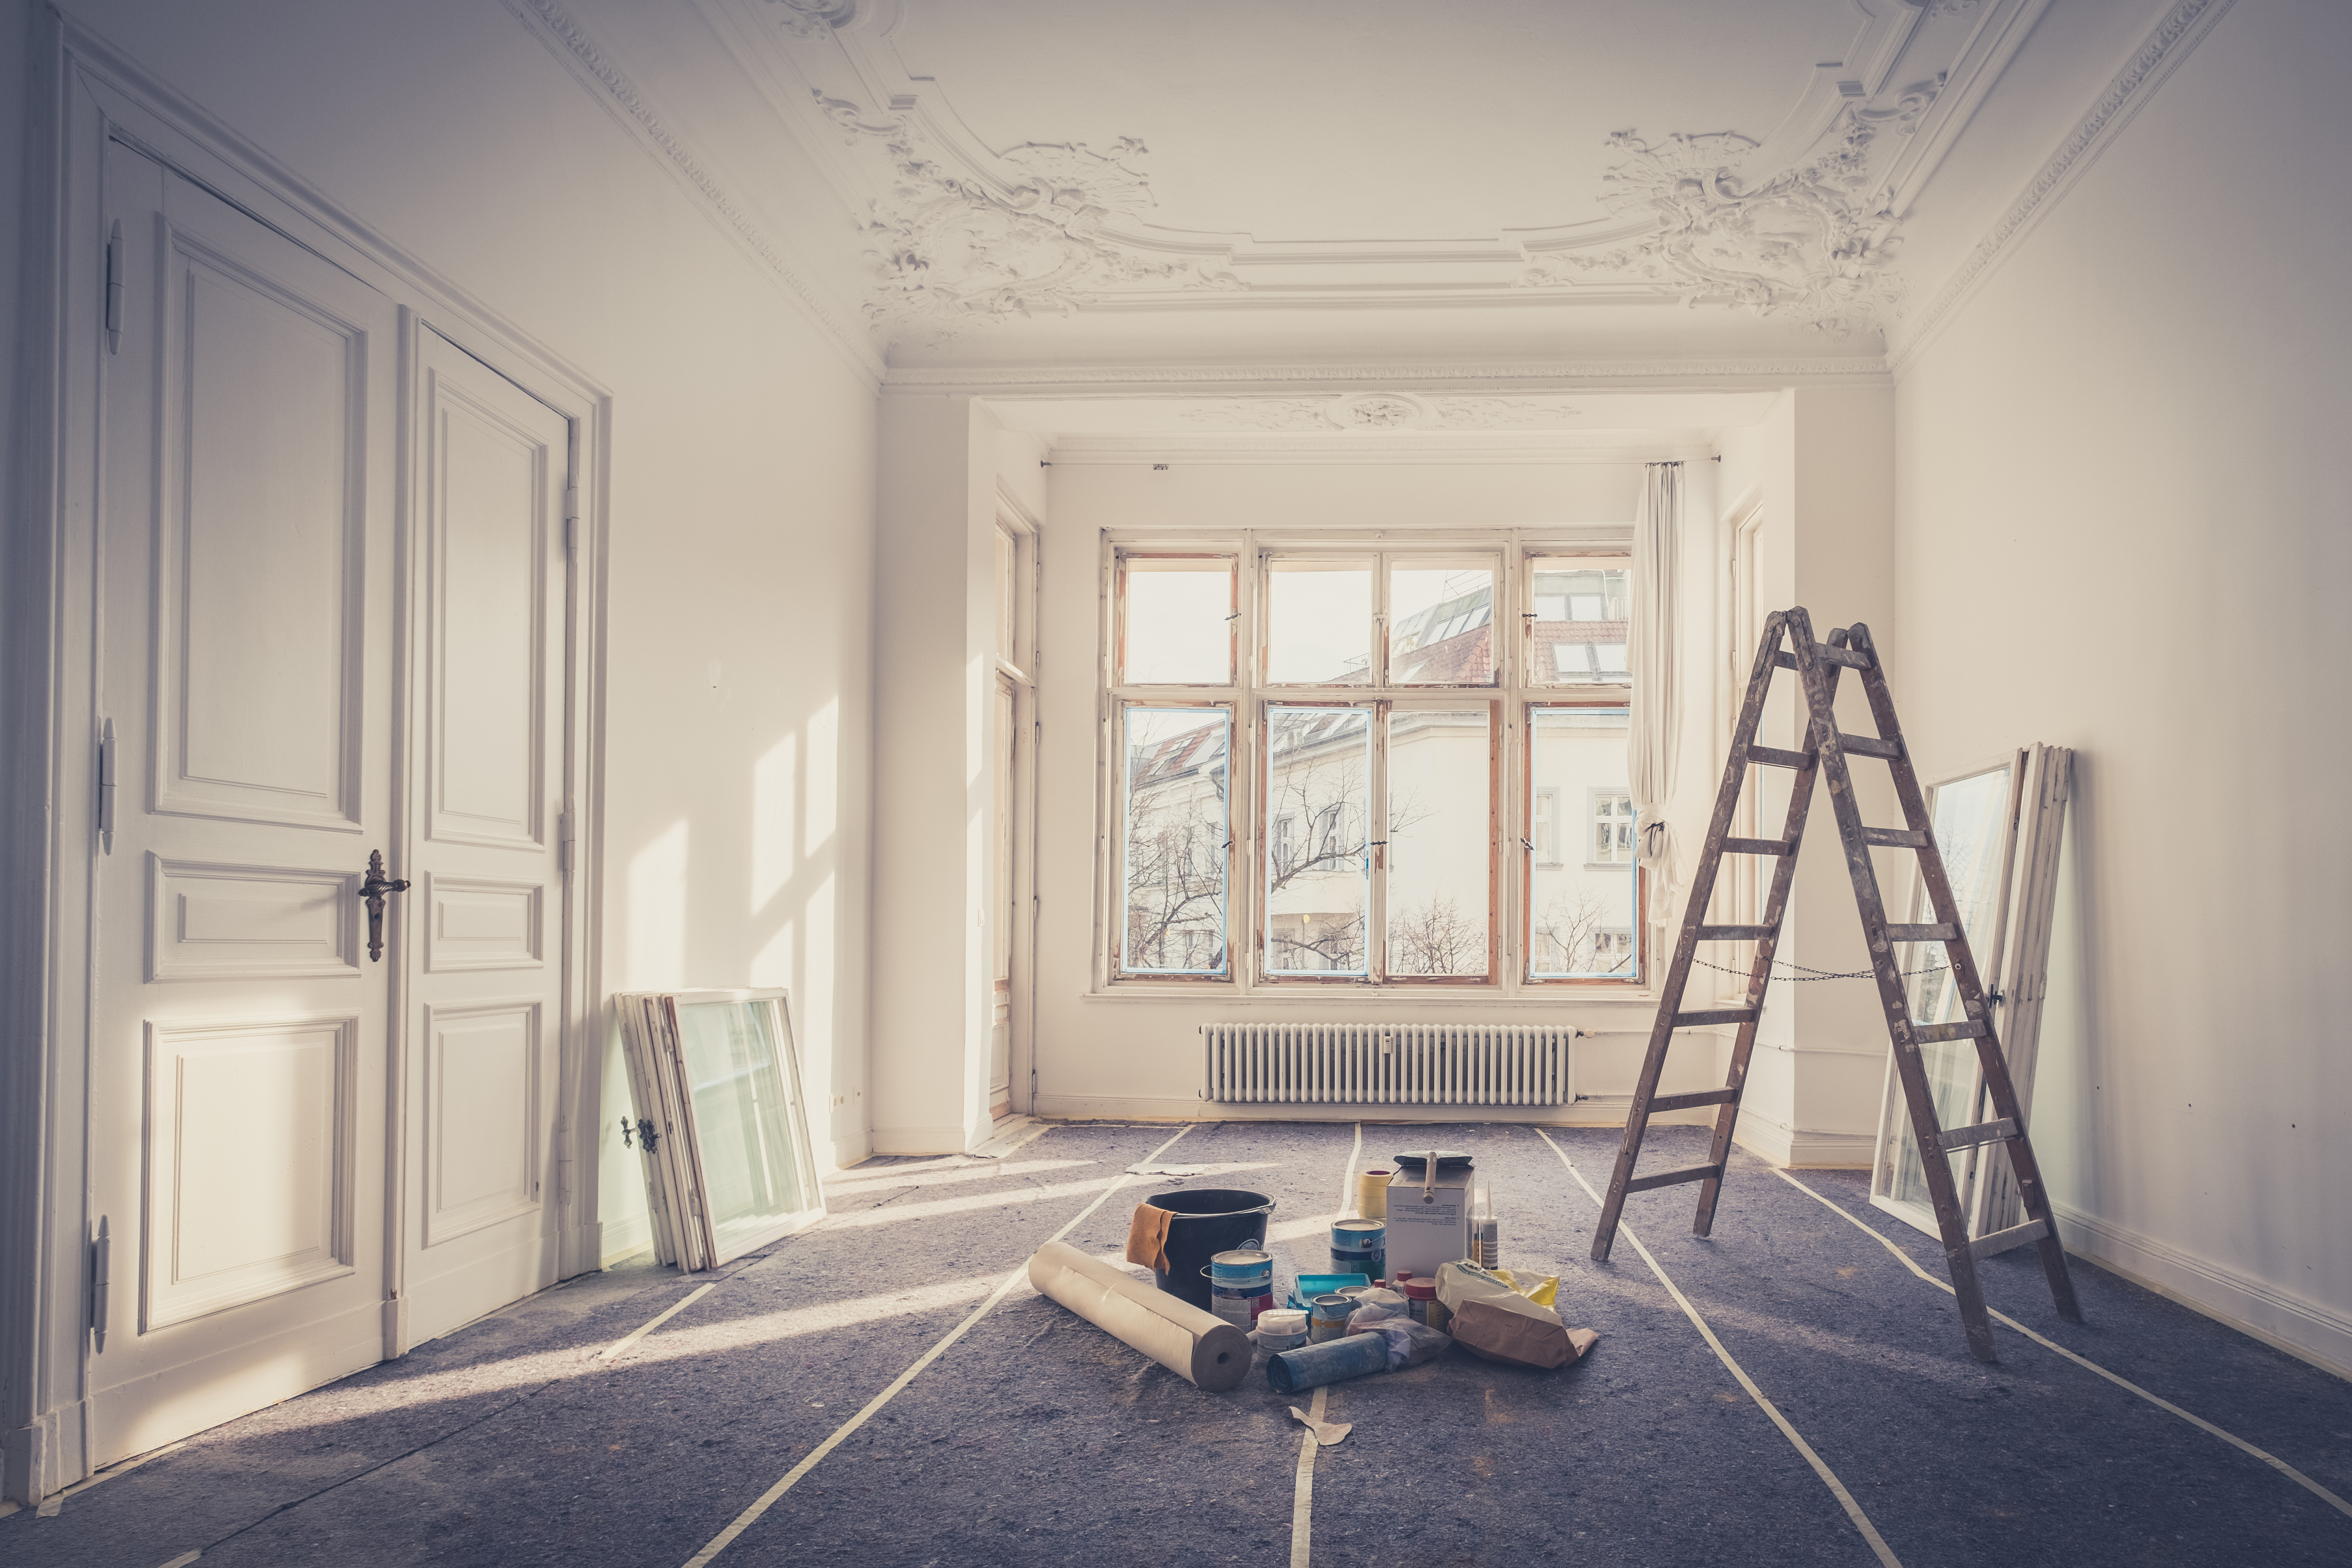 Renovating? Here Are Some Tips to Keep Your Alarm System Running Properly